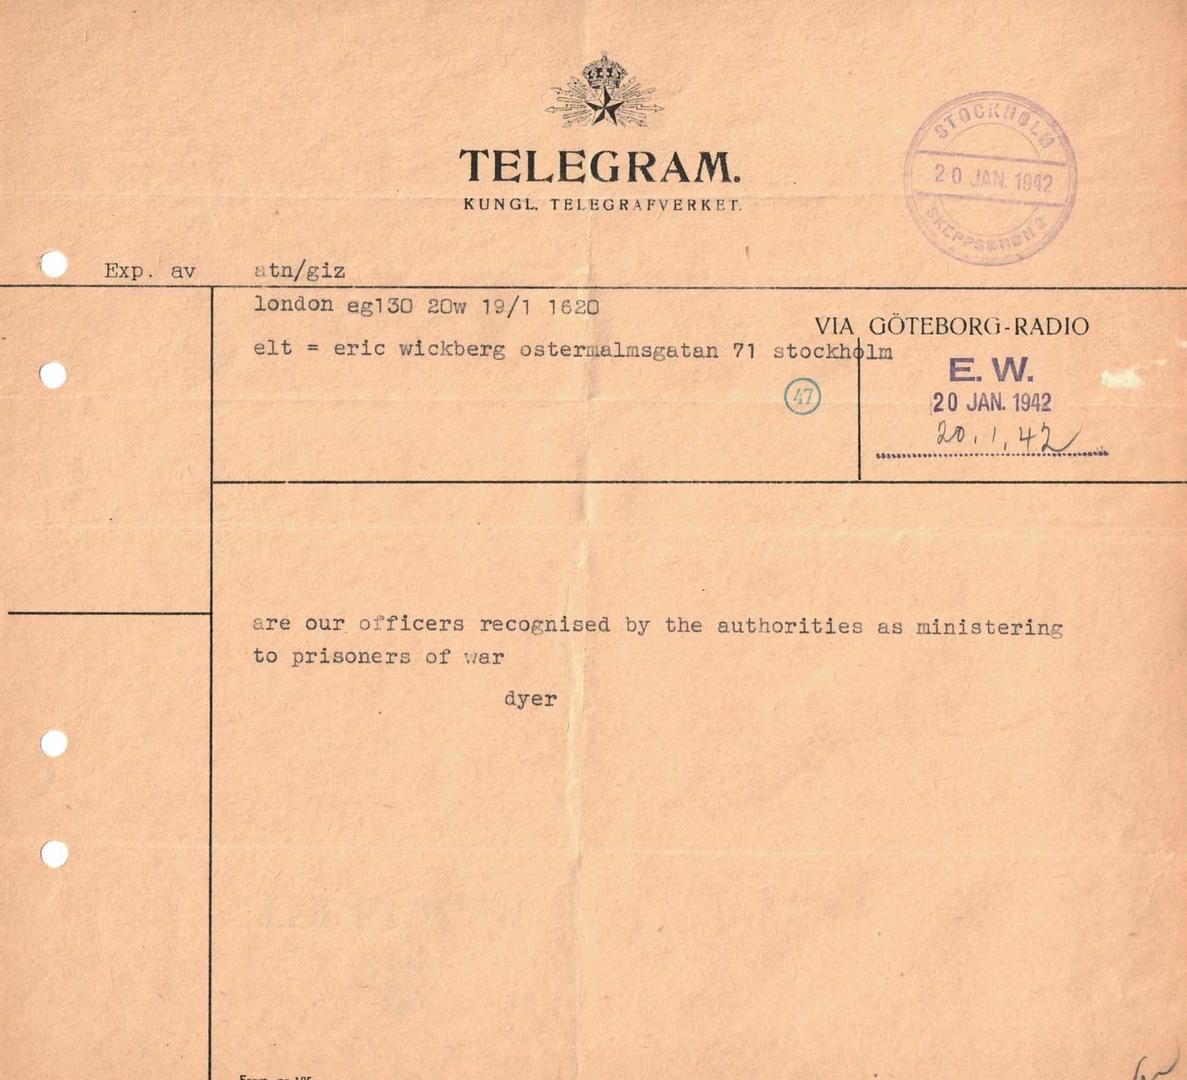 Telegram from Commissioner Frank Dyer to Major Erick Wickberg